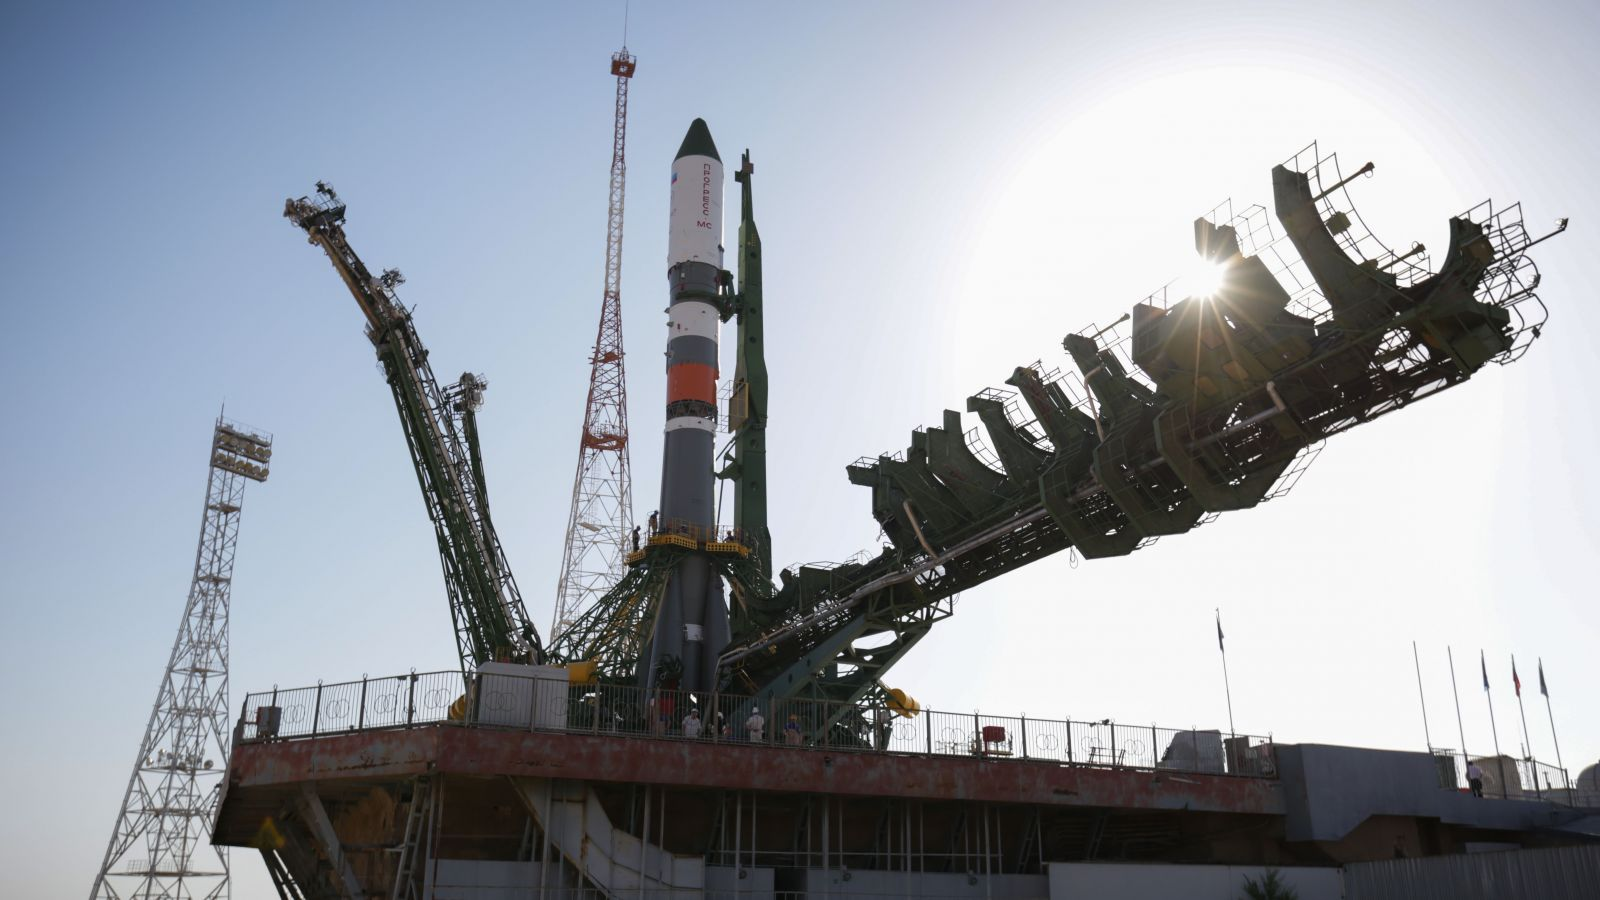 The Soyuz 2.1a rocket with the Progress MS-09 spacecraft encapsulated on top stands vertical at launch pad 31/6 in Baikonur Cosmodrome. Photo Credit: Roscosmos